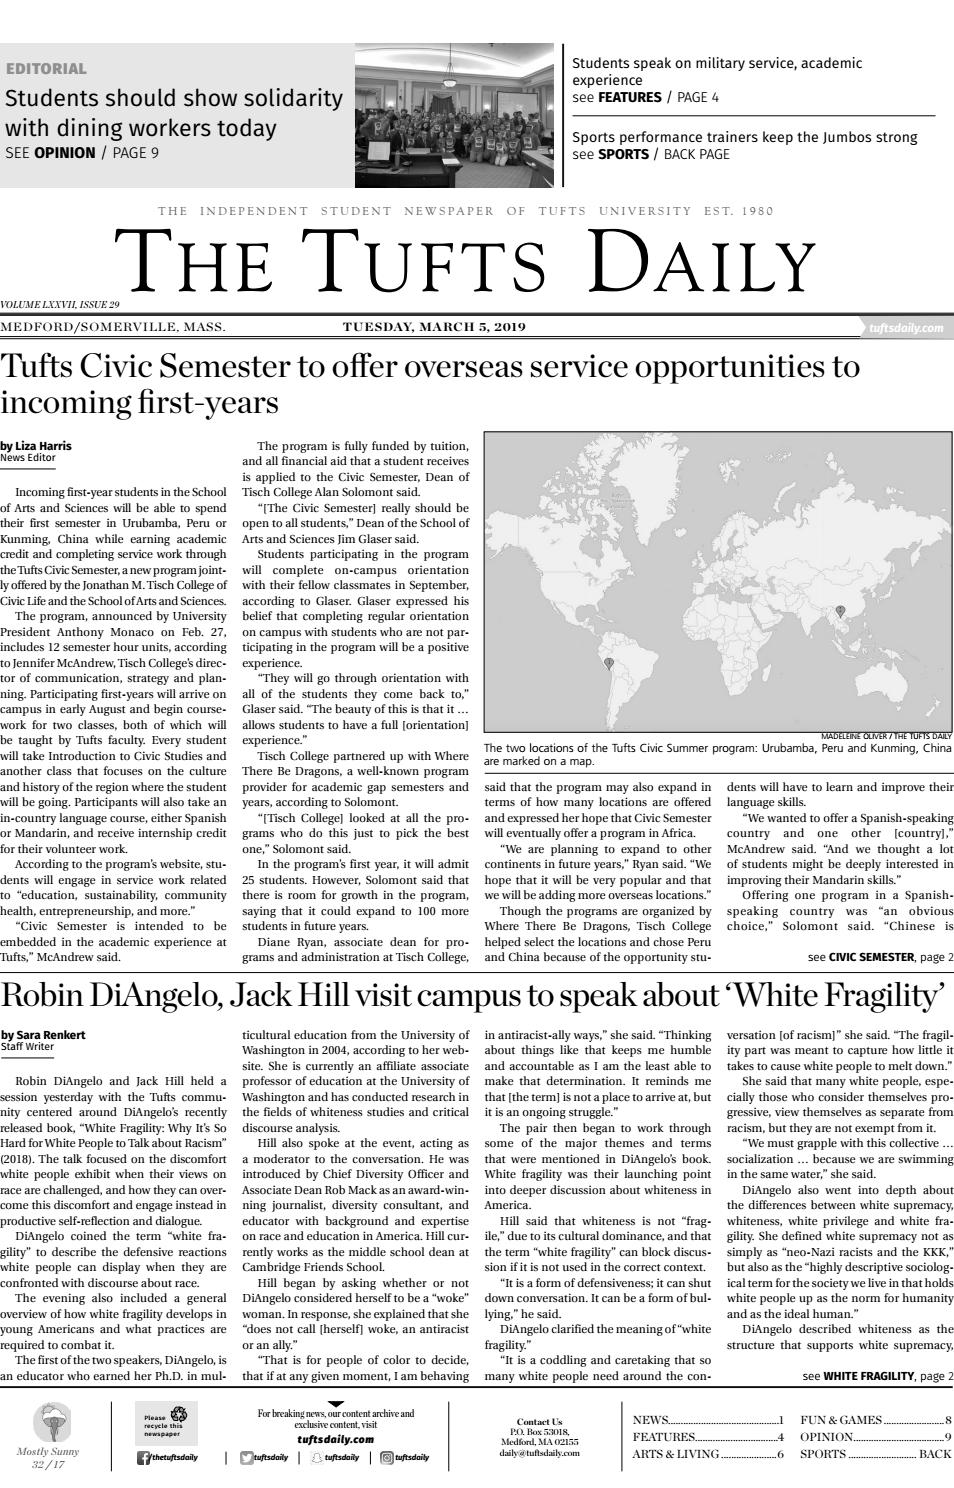 5b5e6f414a5 The Tufts Daily - Tuesday, March 5, 2019 by Tufts Daily - issuu